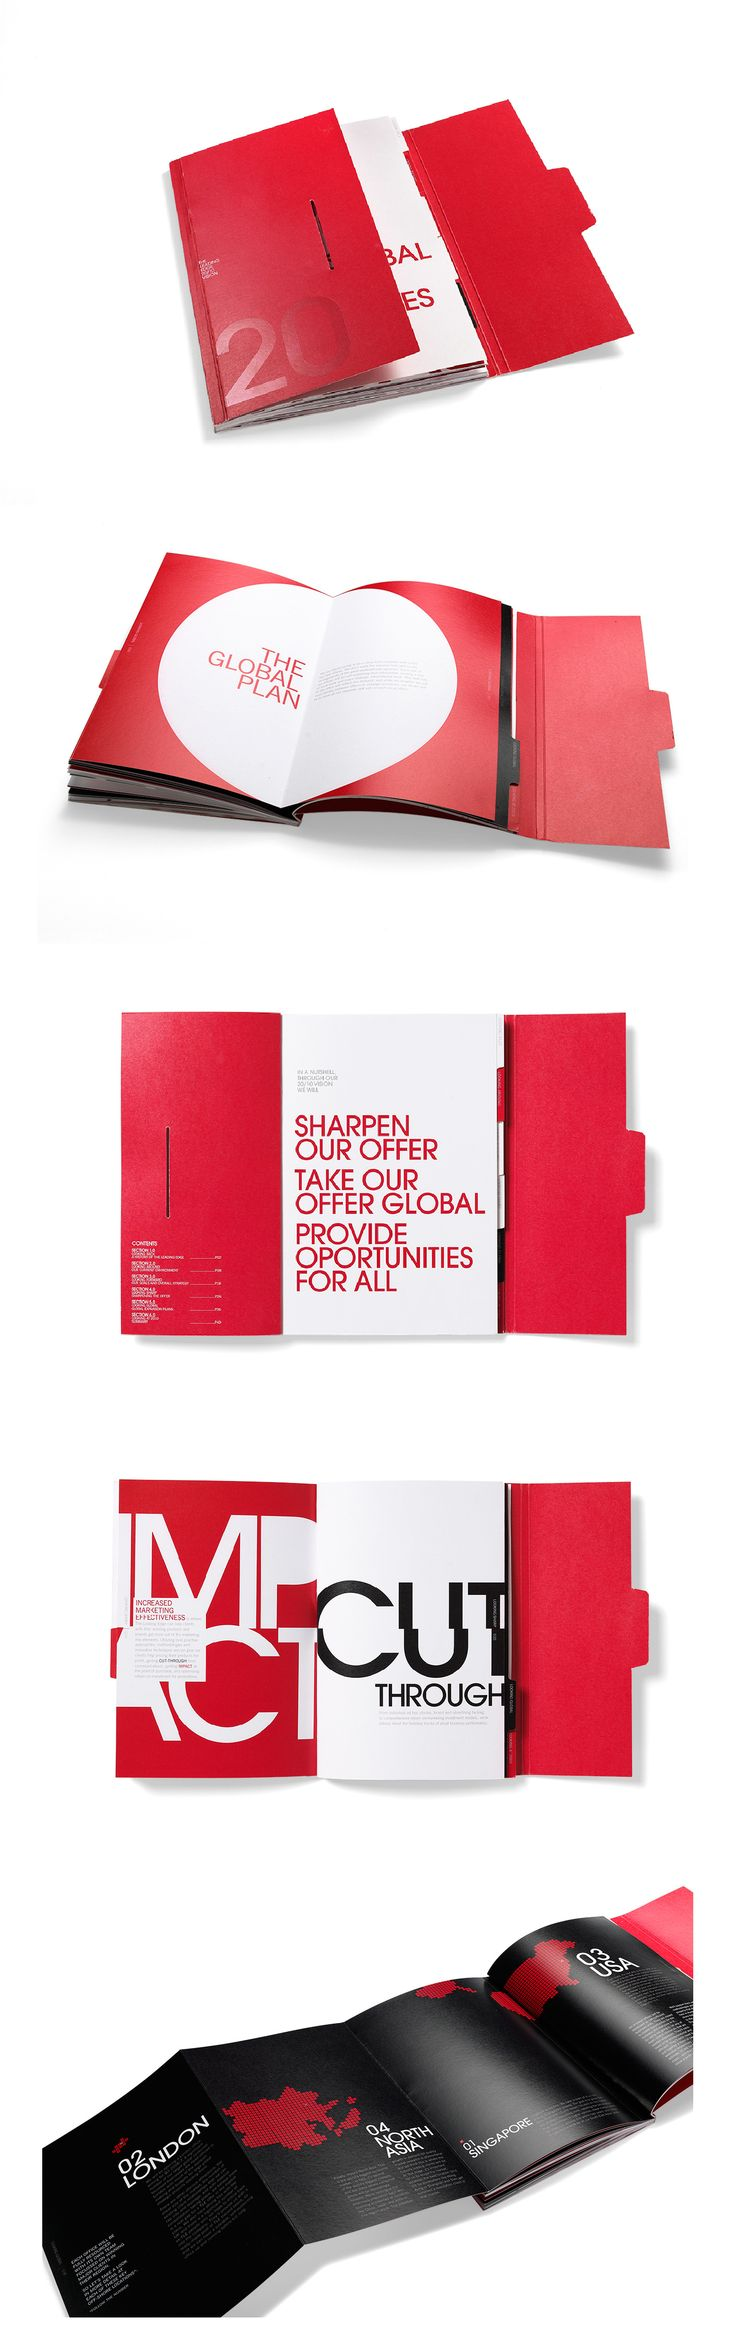 Leading Edge by Ascender #brand #branding #identity #design #visual #graphic #logo #logotype #print #editorial #publication #brochure #report #collateral #magazine #typography #layout #spread #spreads #poster #book #booklet #annual #review #type #typography #typographic